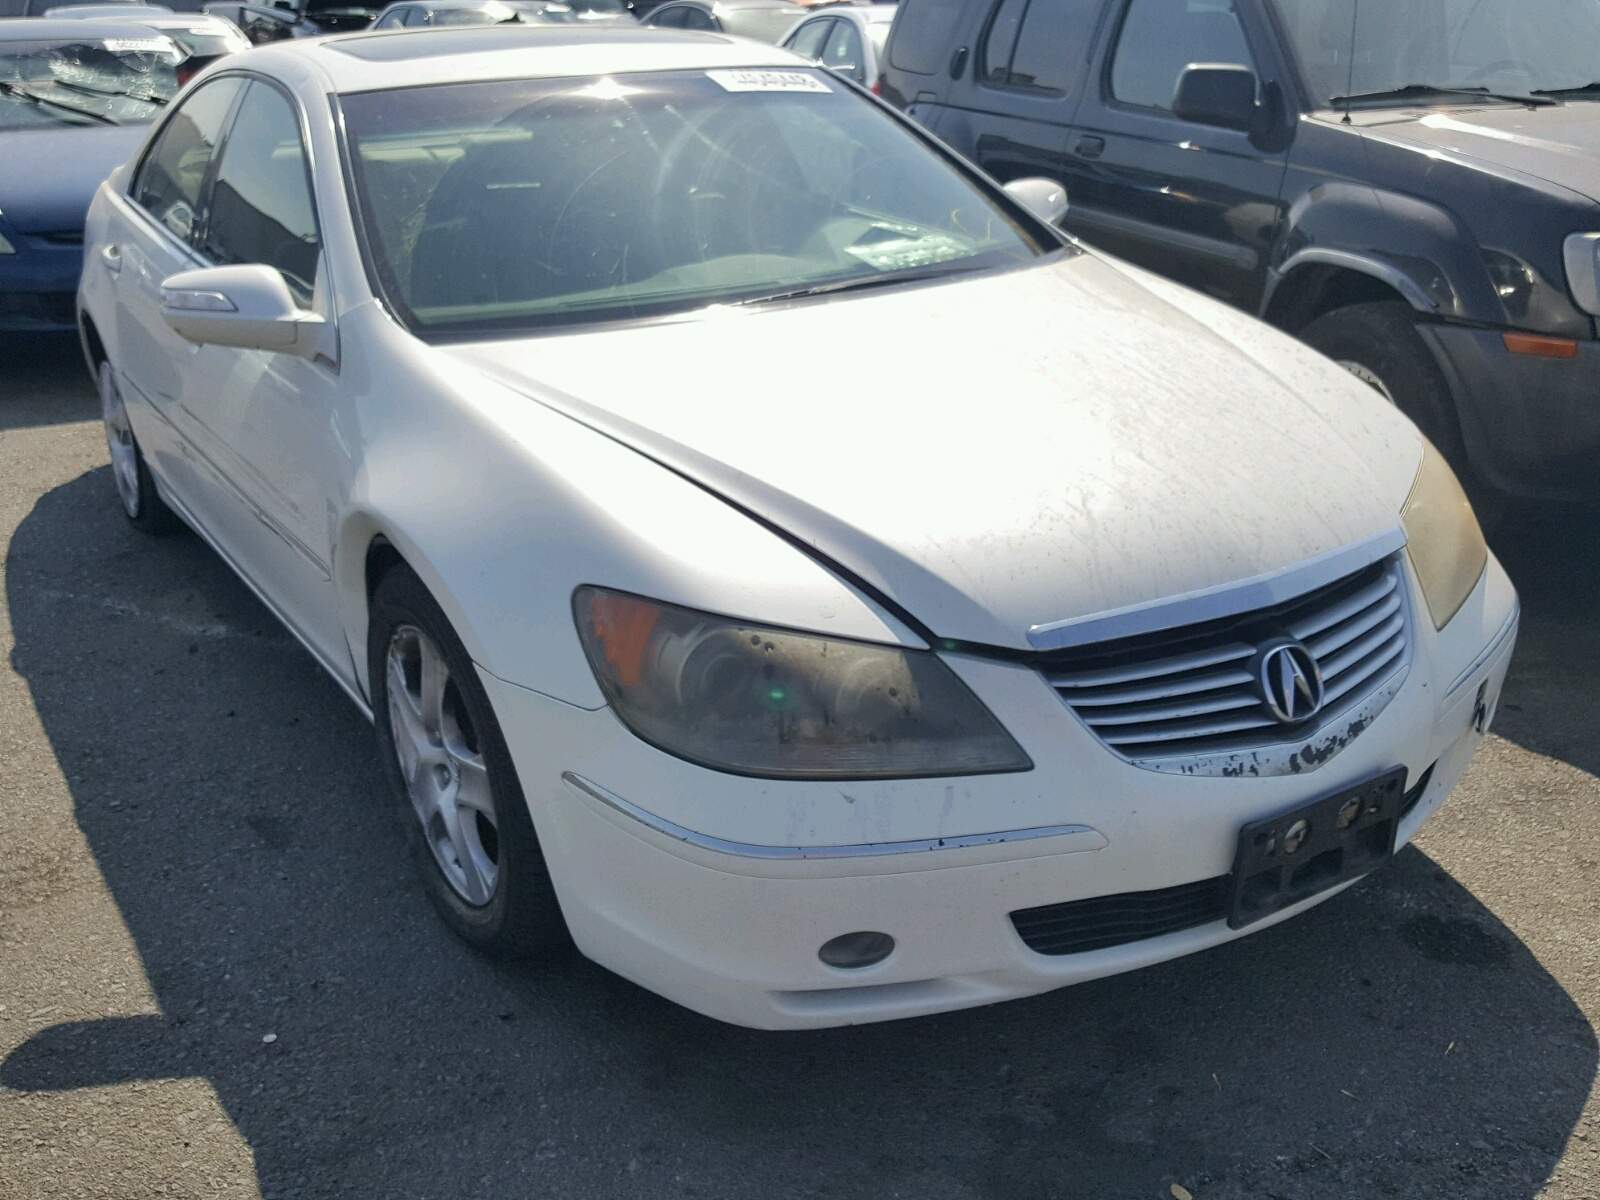 Acura RL For Sale At Copart Vallejo CA Lot - 2005 acura rl for sale by owner